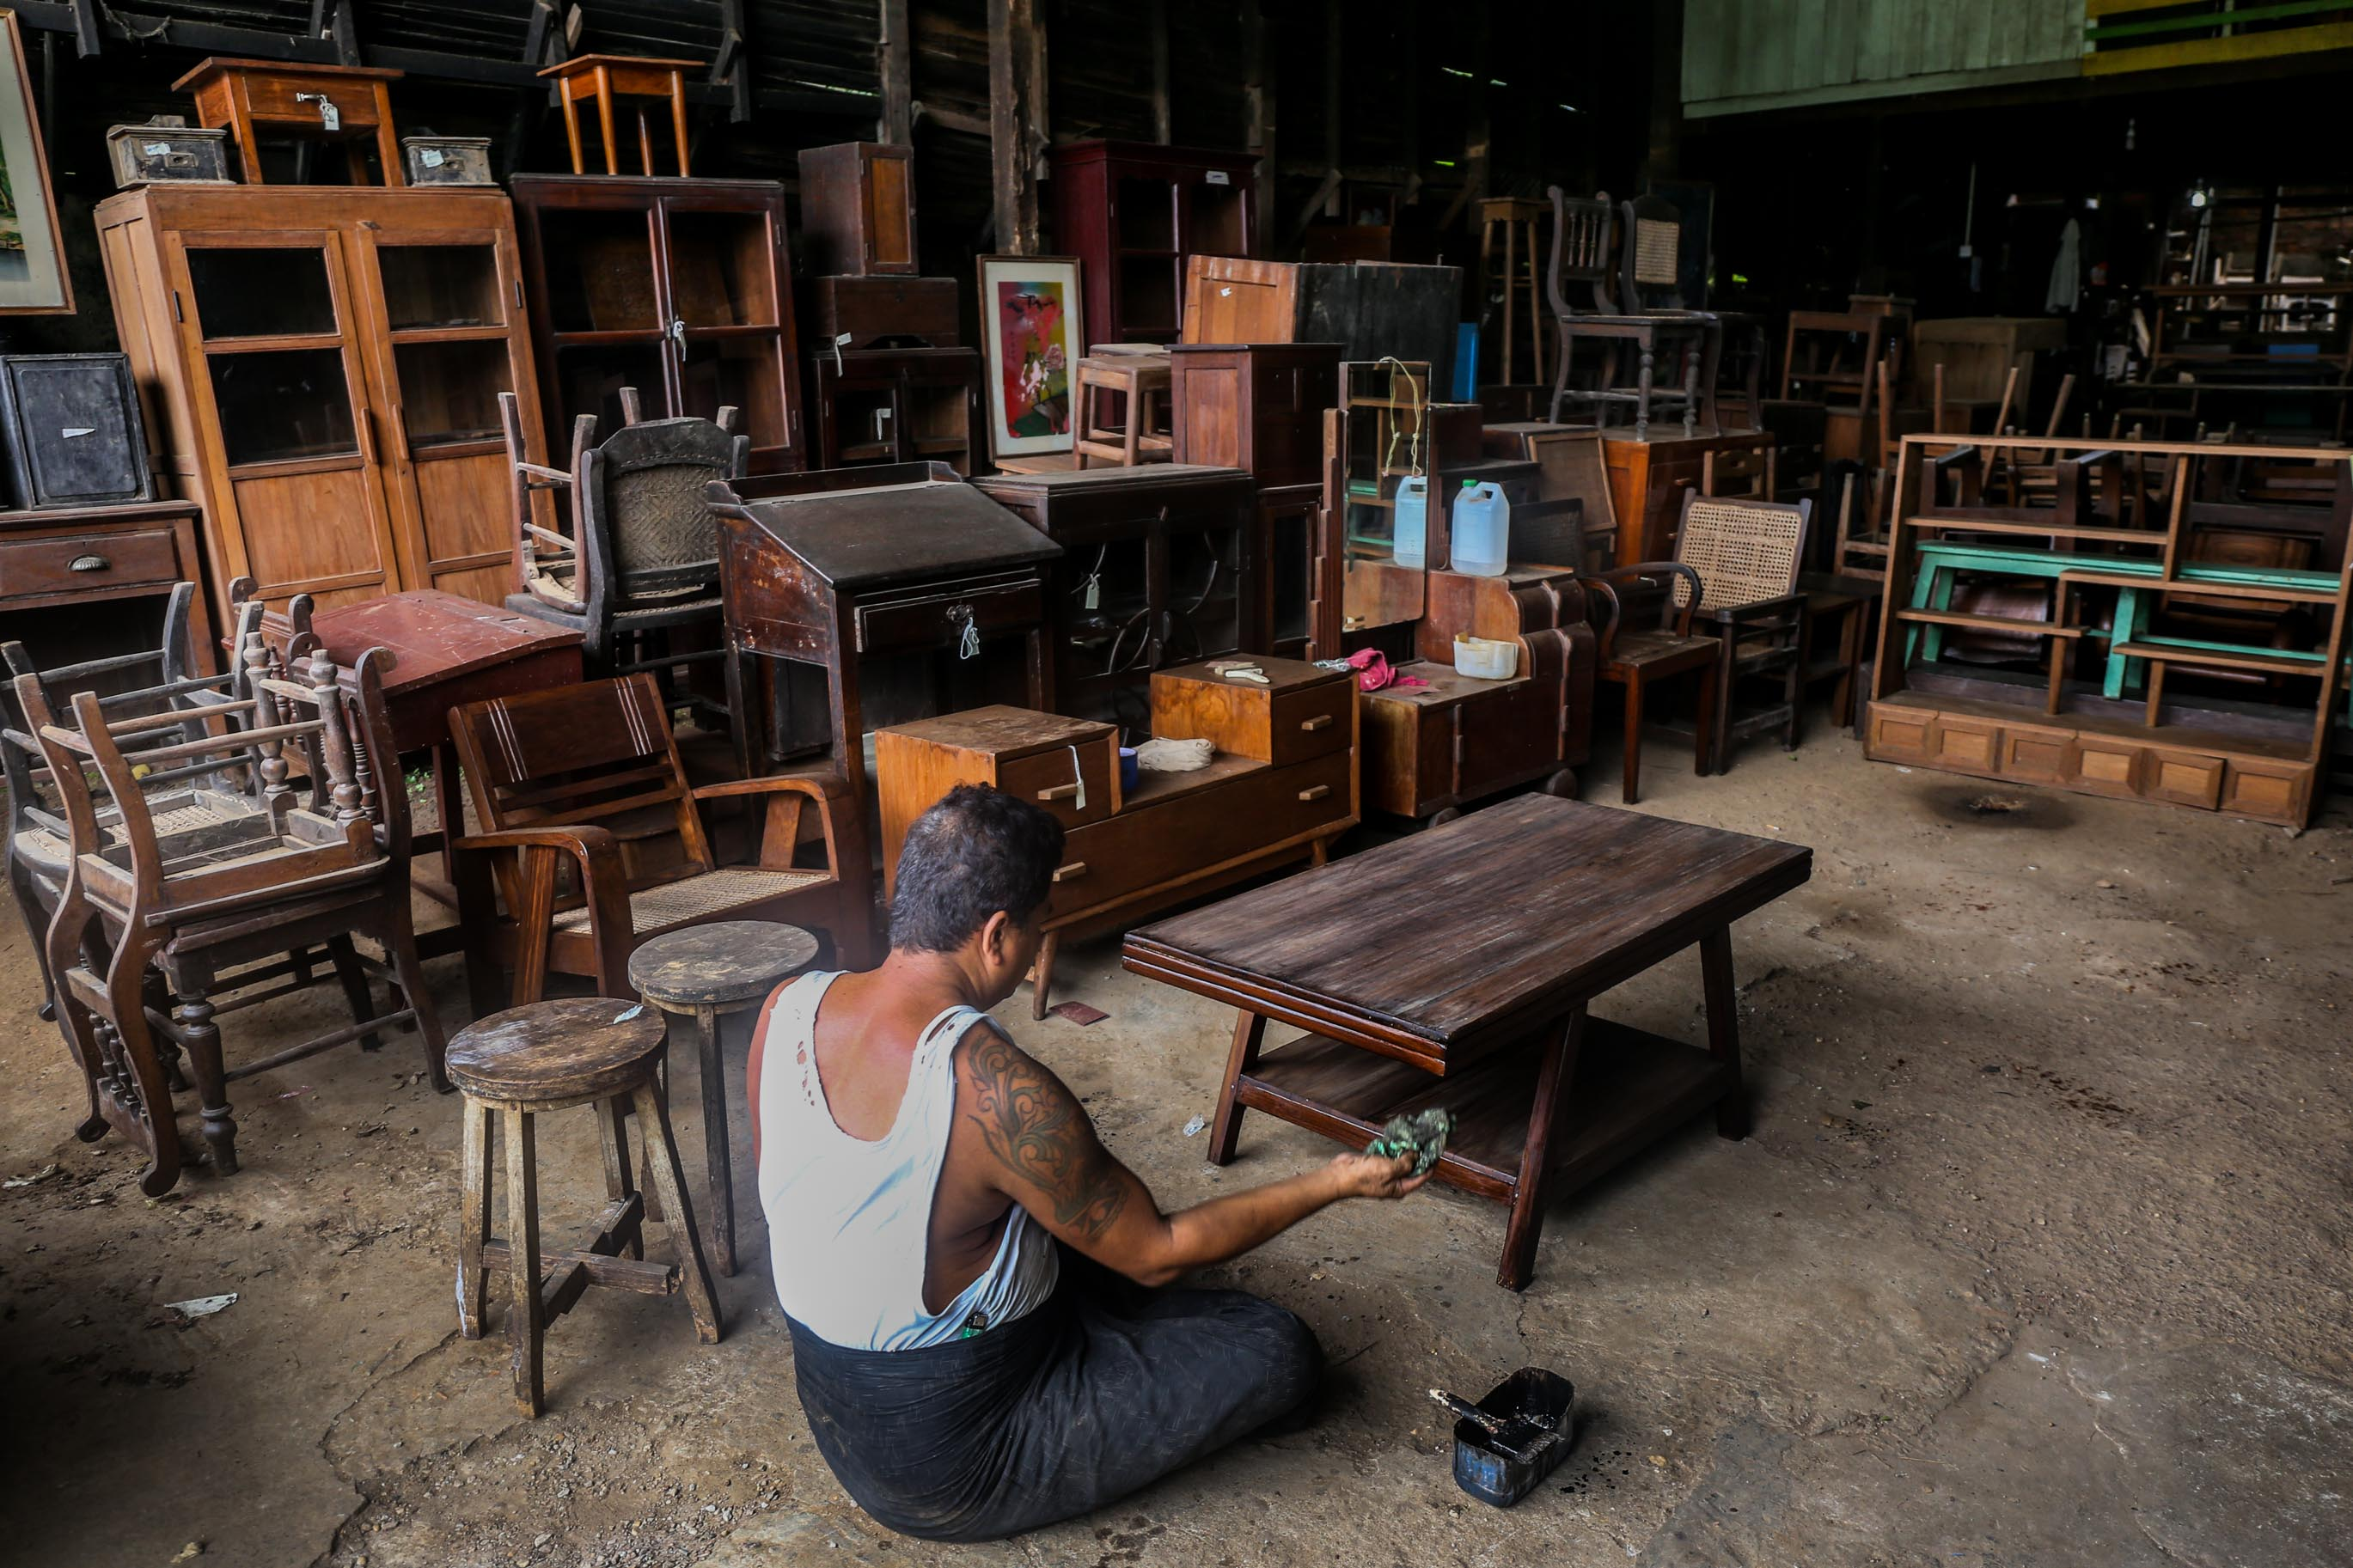 Colonial-era Teak Furniture Restoration in Yangon, Myanmar (Burma) Asia Antiques Buying Tours with The Antiques Diva